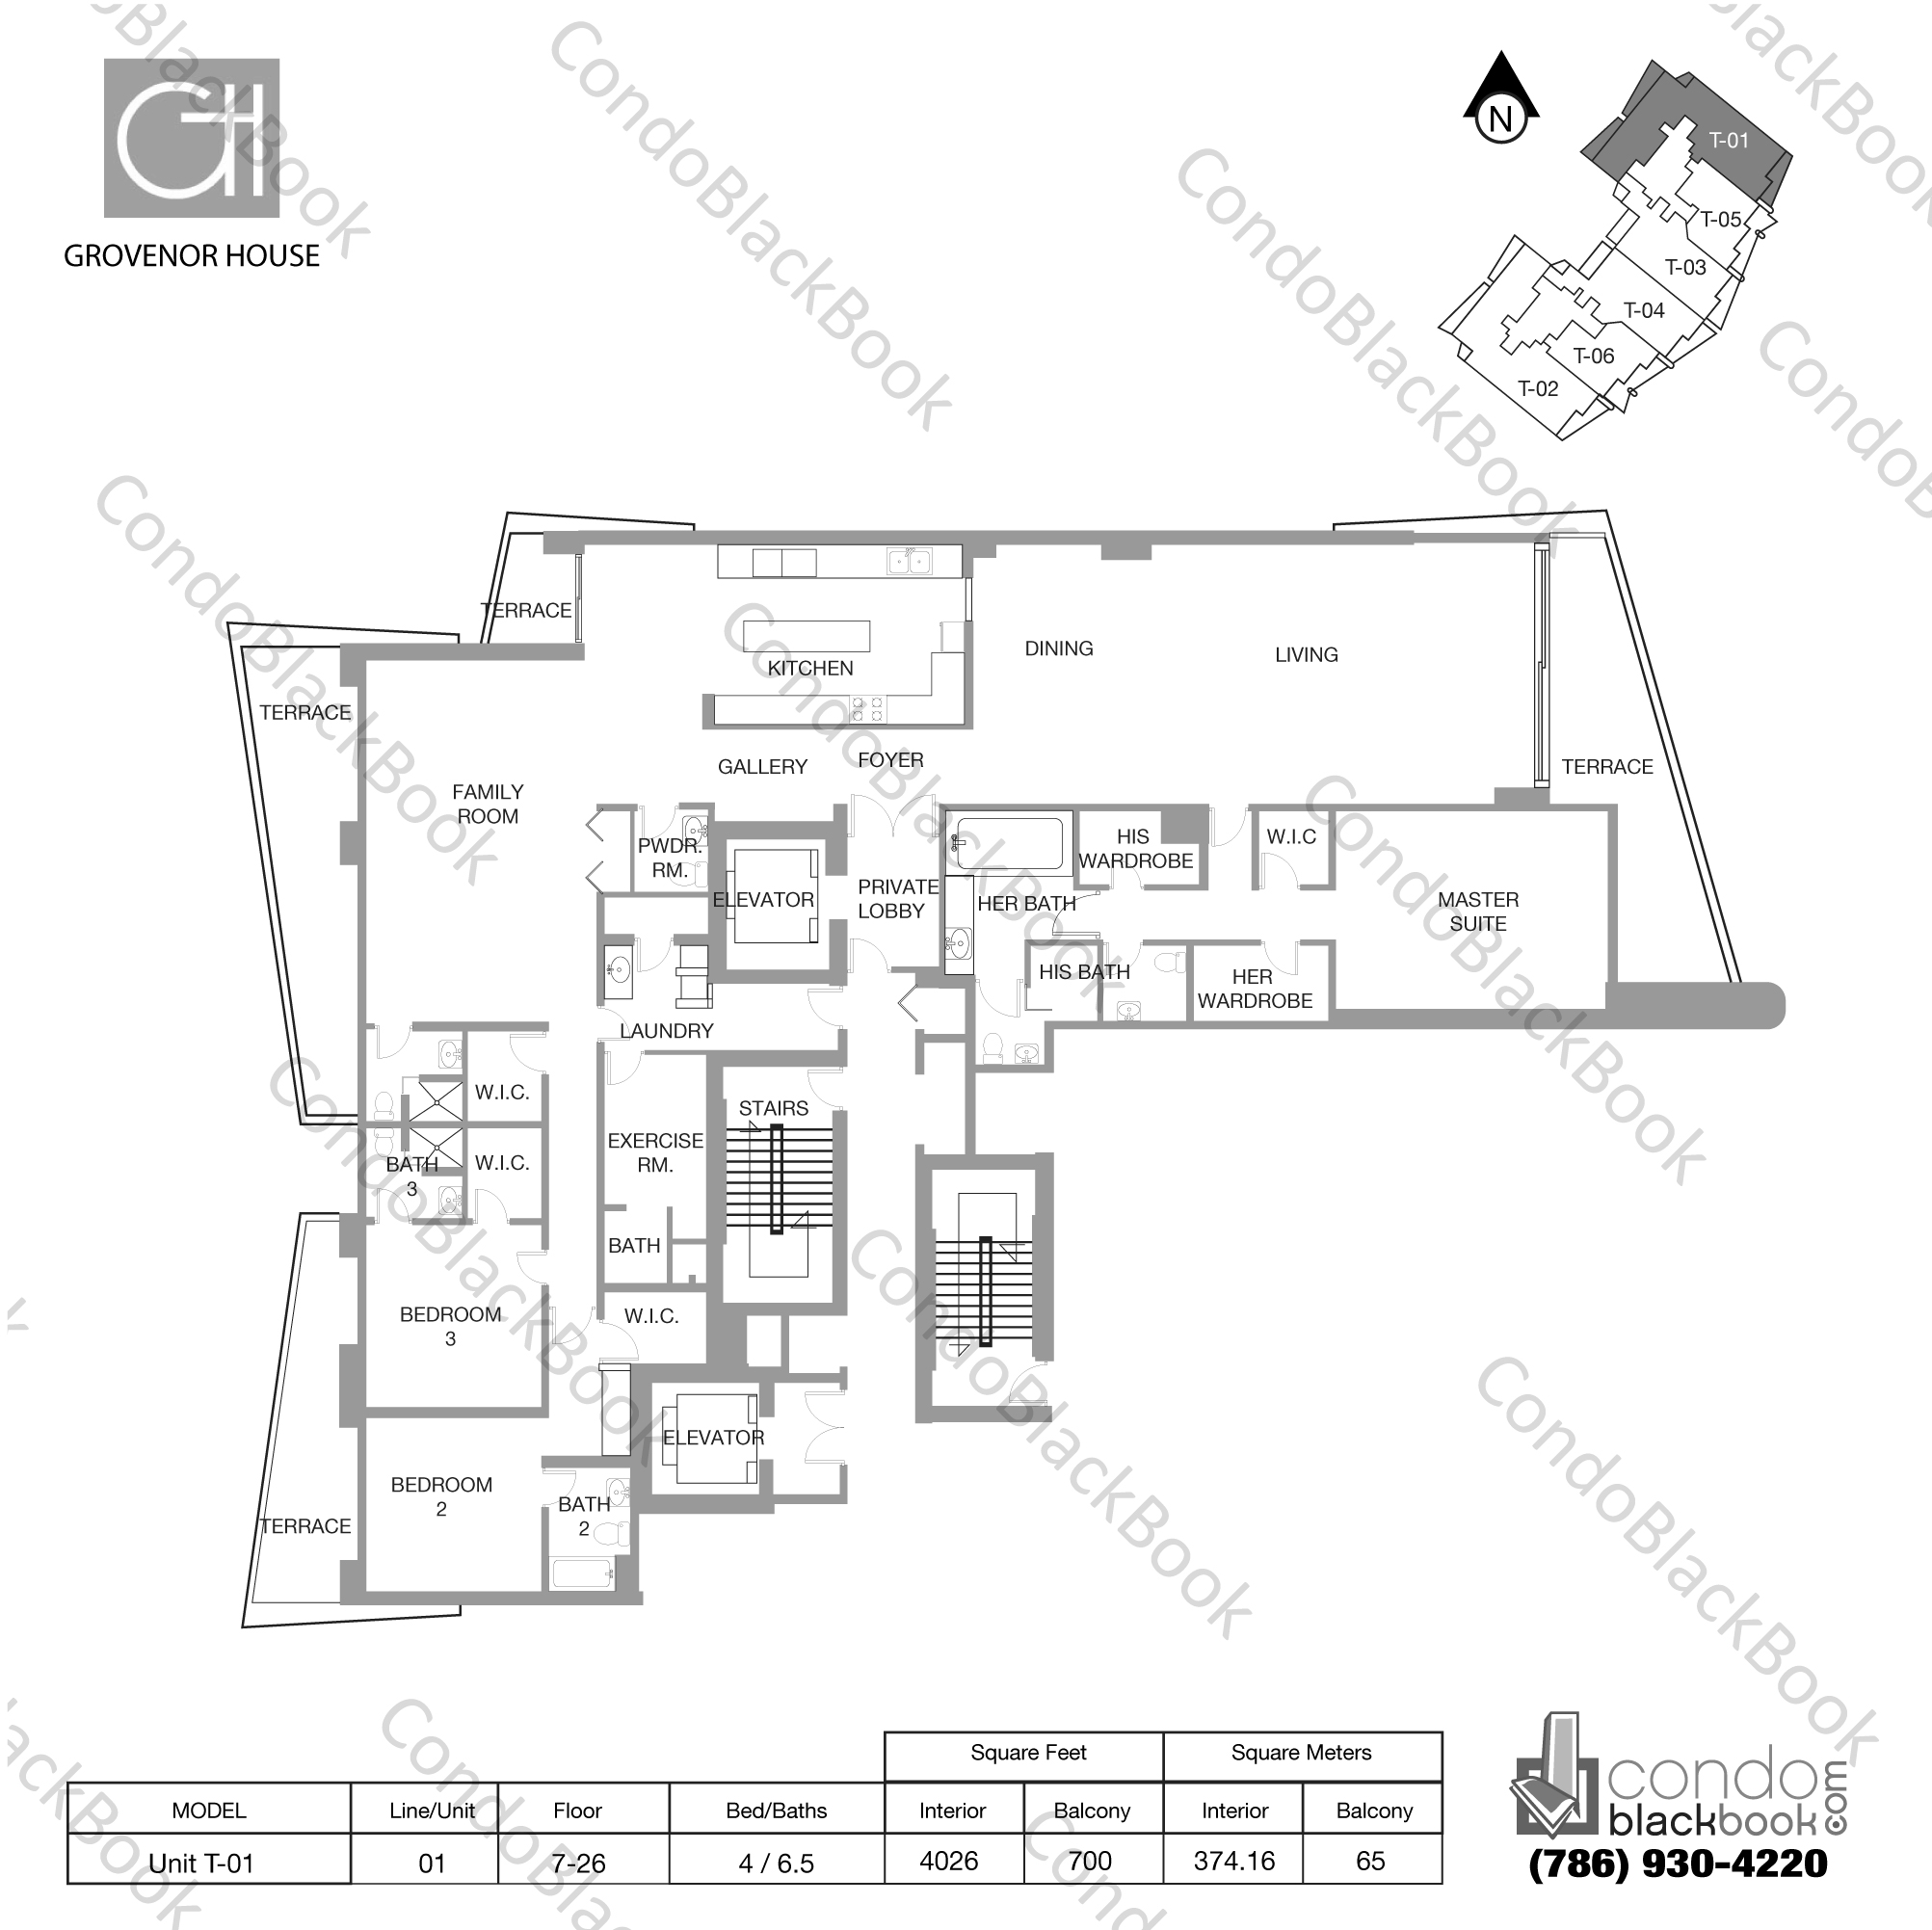 Floor plan for Grovenor House Coconut Grove Miami, model Unit T-01, line 01, 4 / 6.5 bedrooms, 4026 sq ft